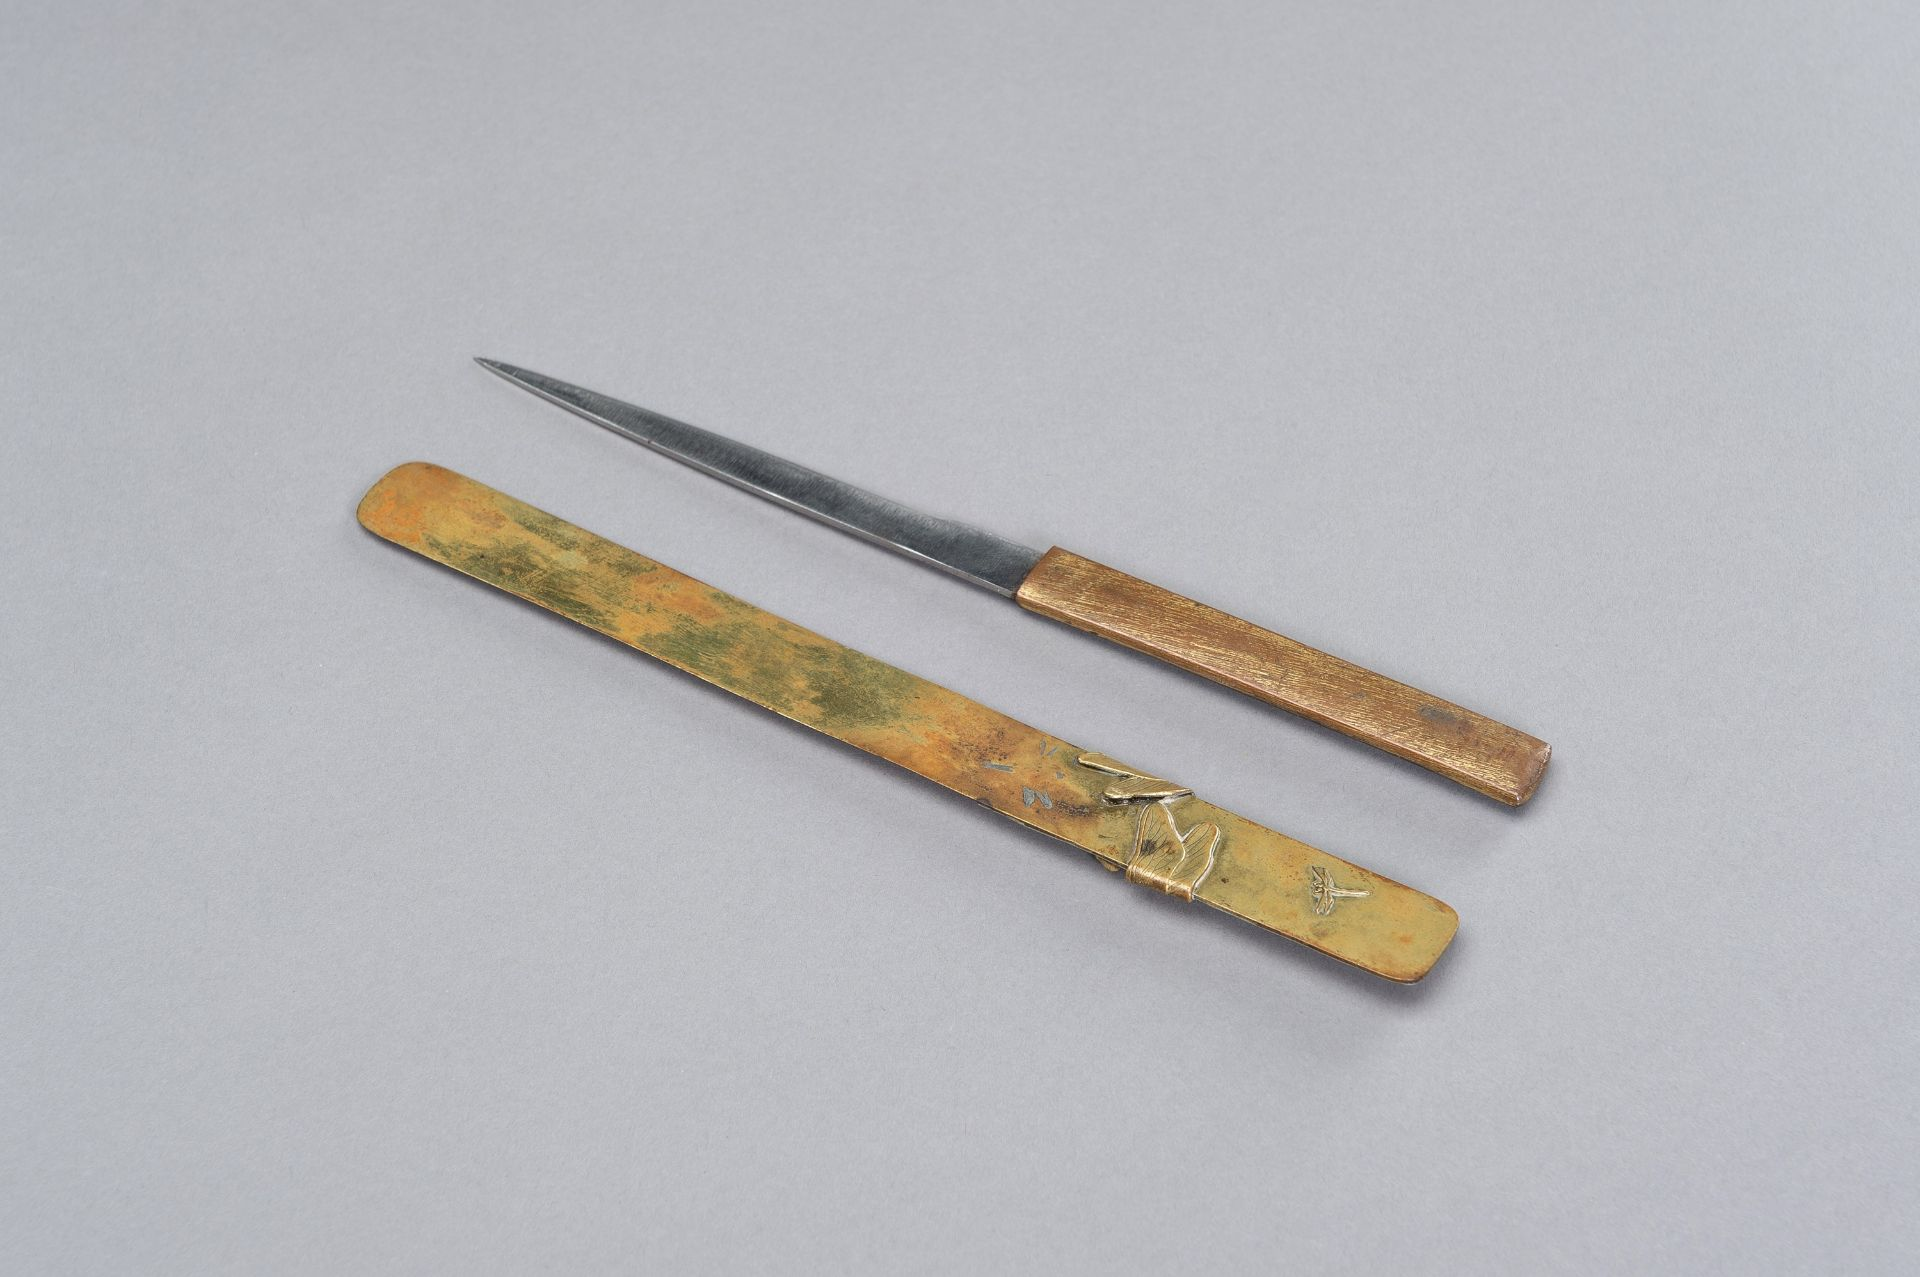 A COPPER KOZUKA WITH BLADE AND A SENTOKU PAGE TURNER WITH DRAGONFLY - Image 7 of 7